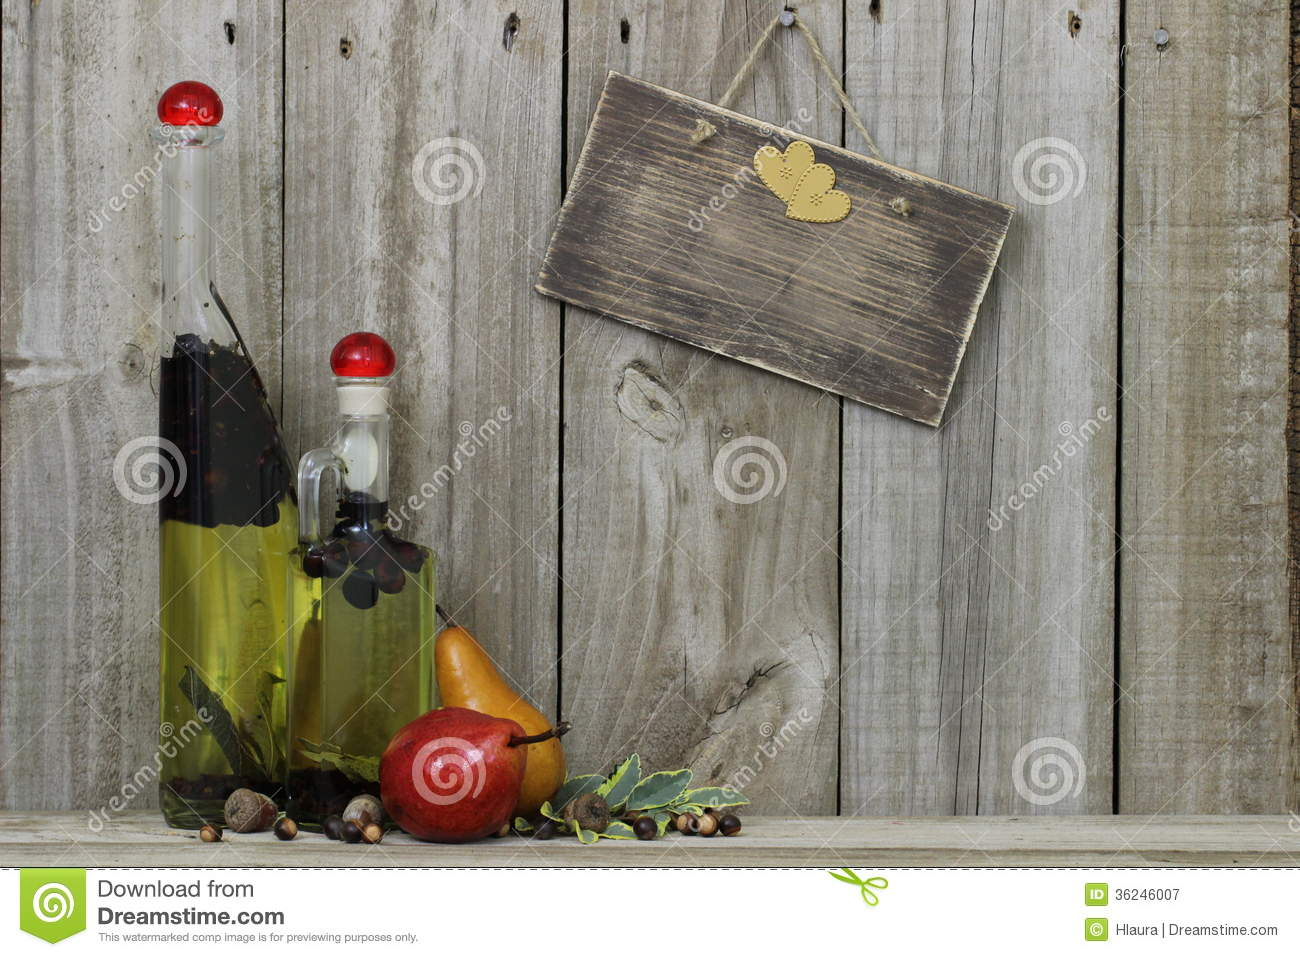 Spice oil jars with pears and blank wood sign